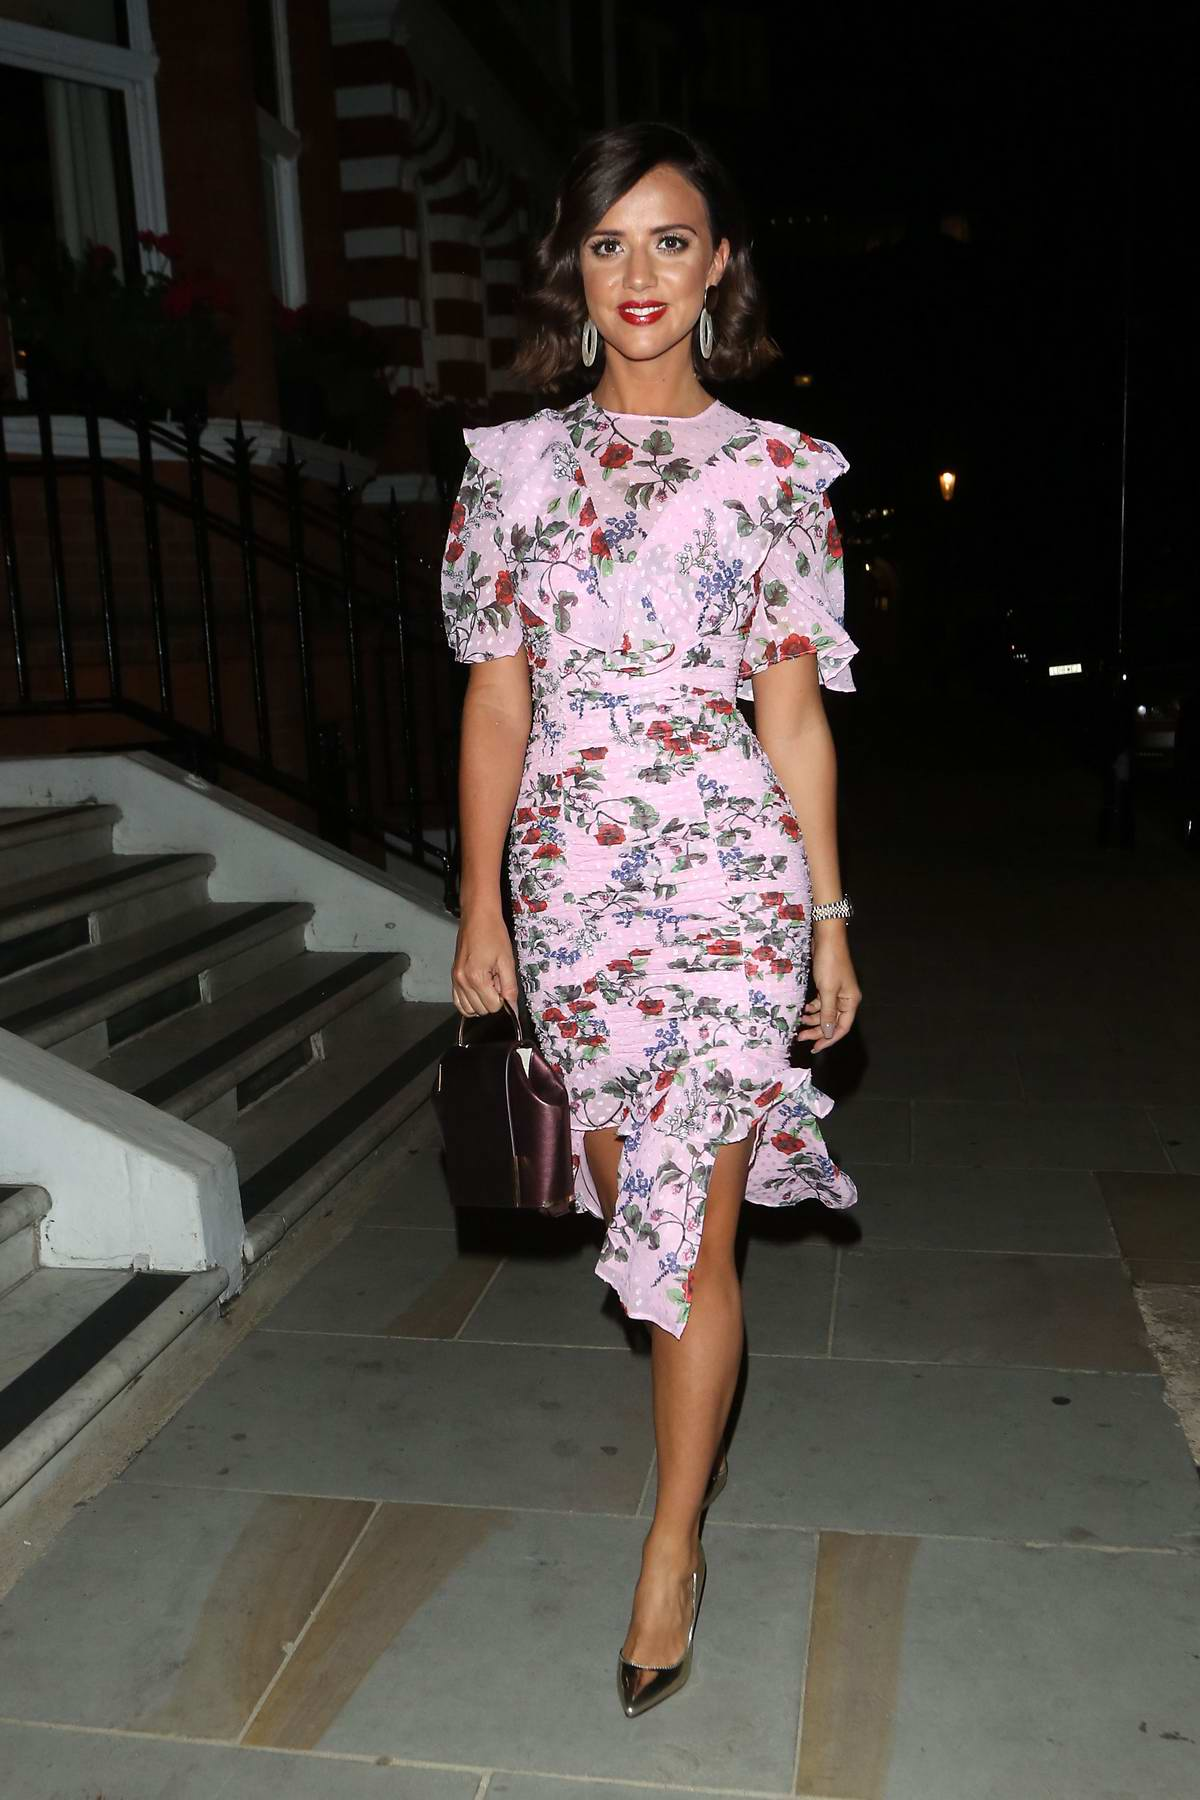 Lucy Mecklenburgh wears a floral print pink dress while out celebrating her 27th birthday in London, UK